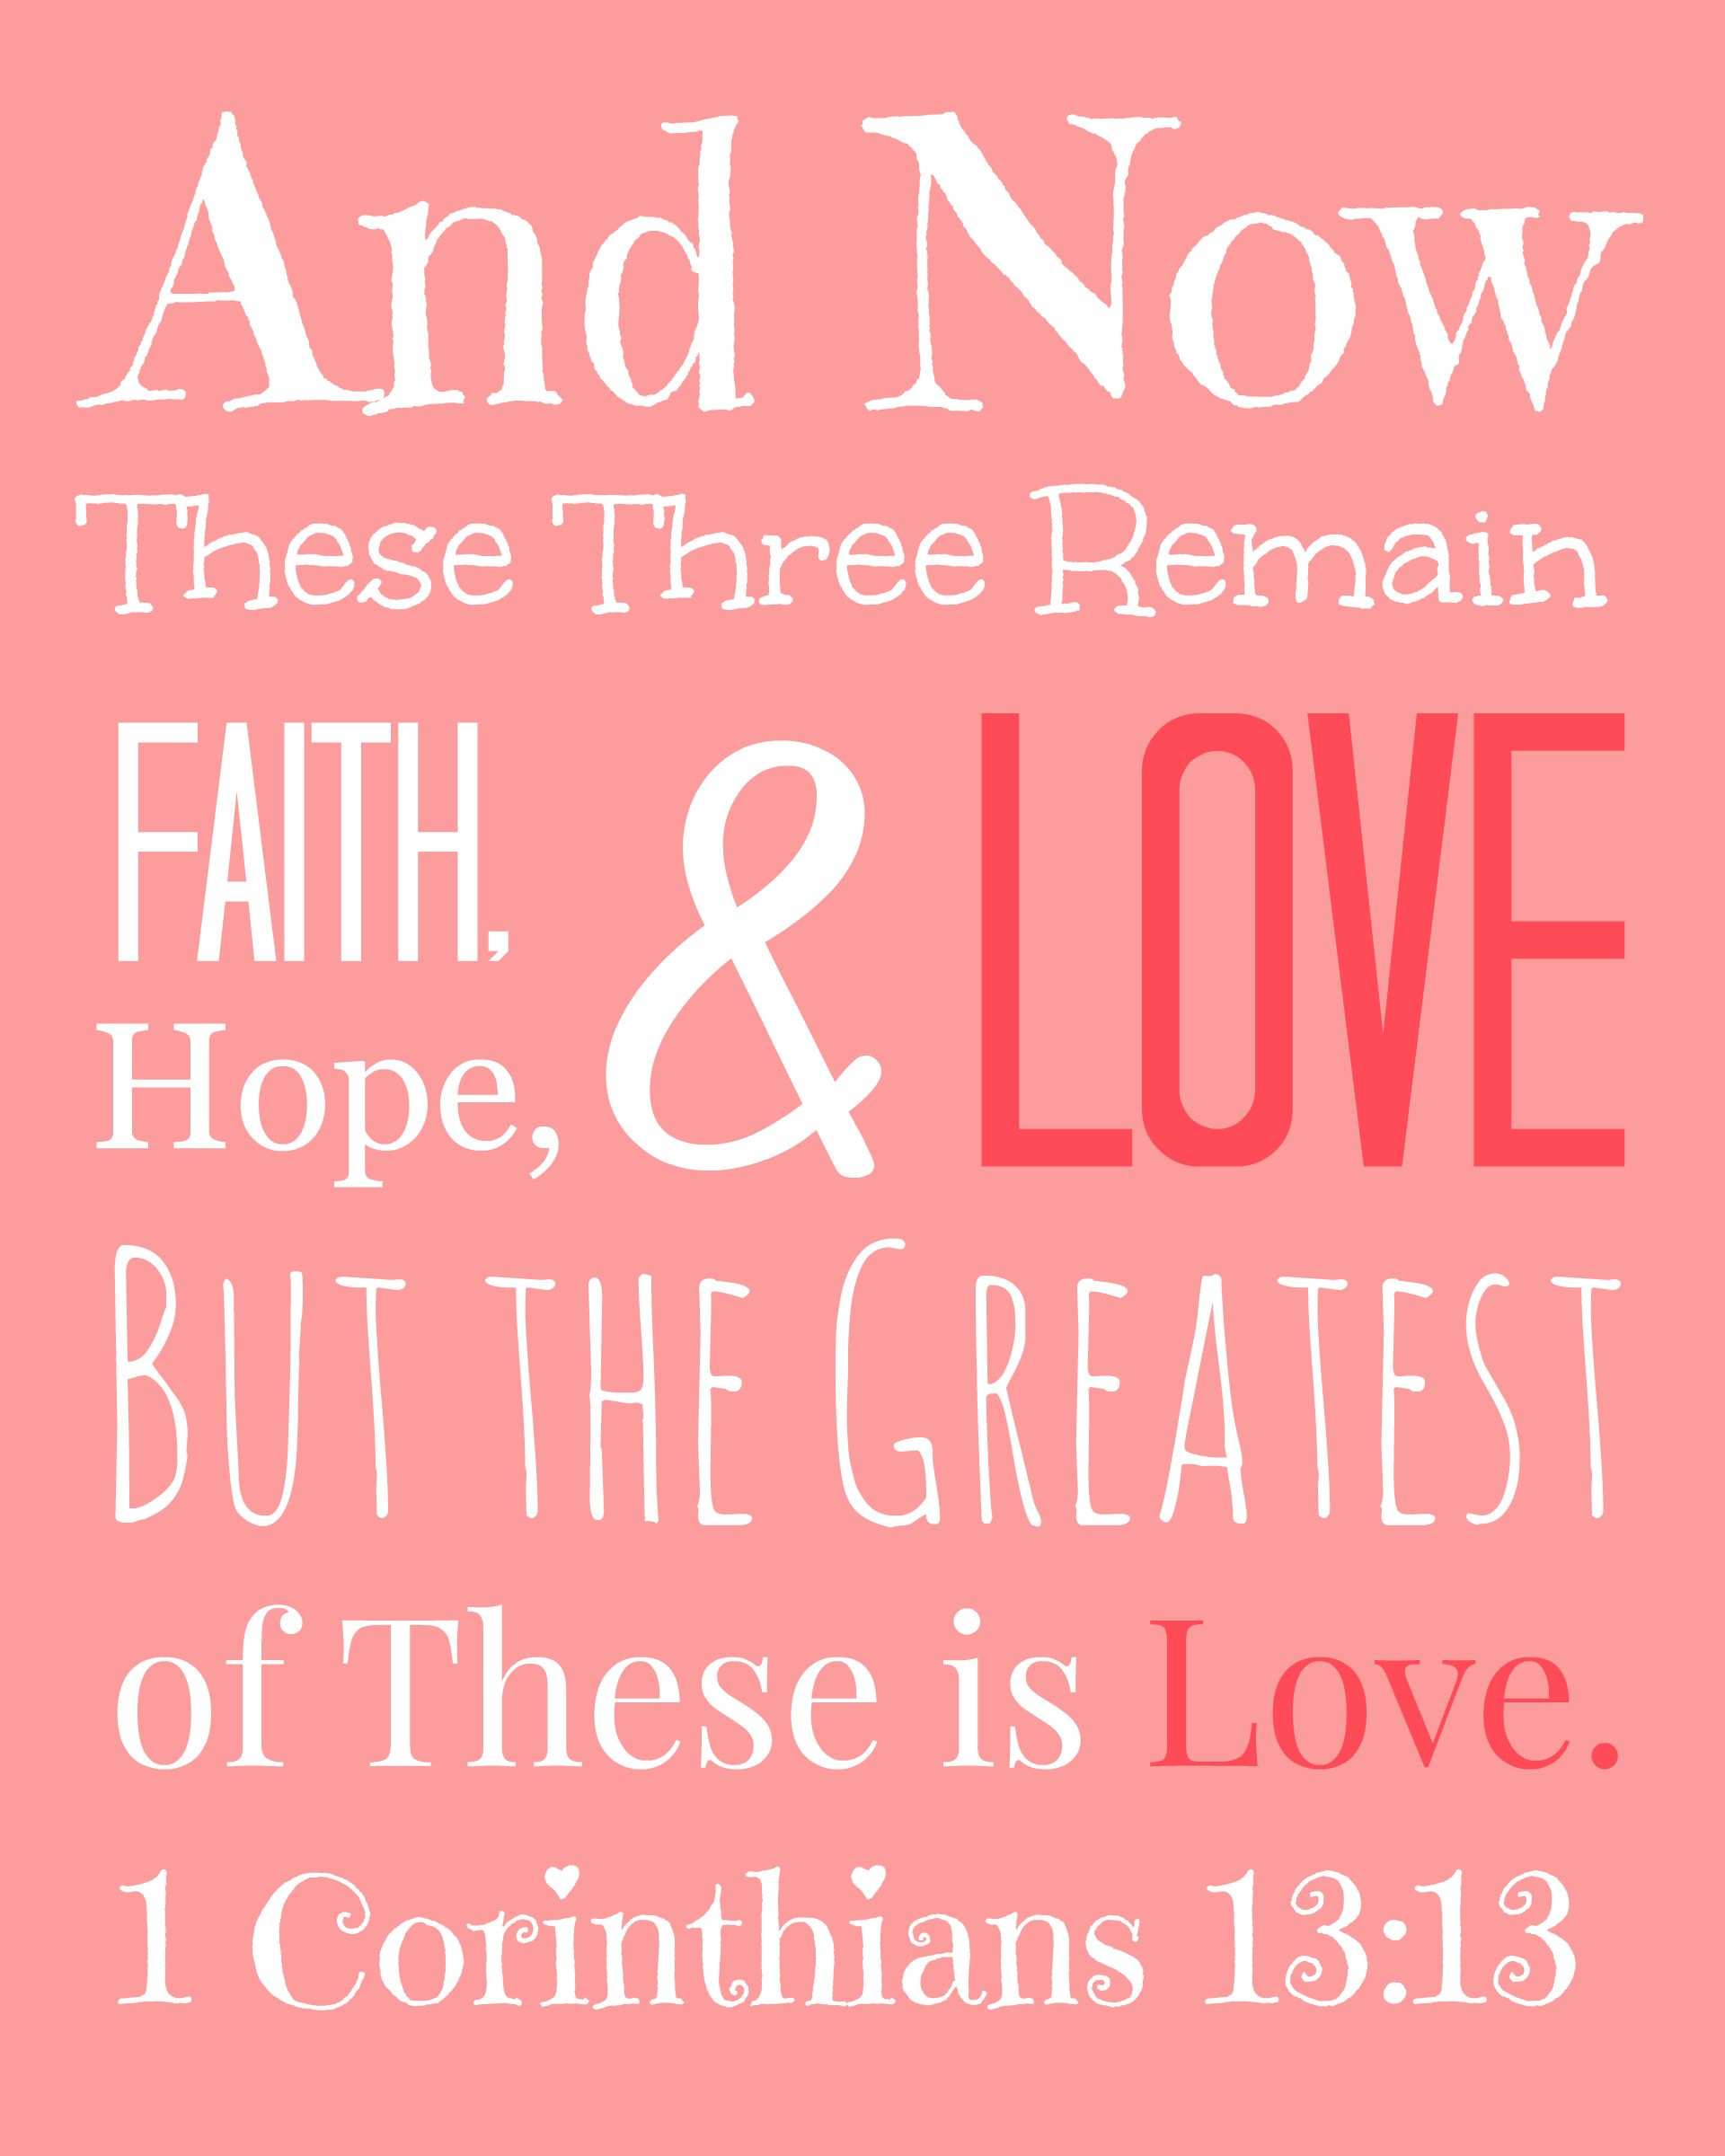 Love Bible Quotes Love Bible Verses  1 Corinthians 1313  The Well Nourished Nest